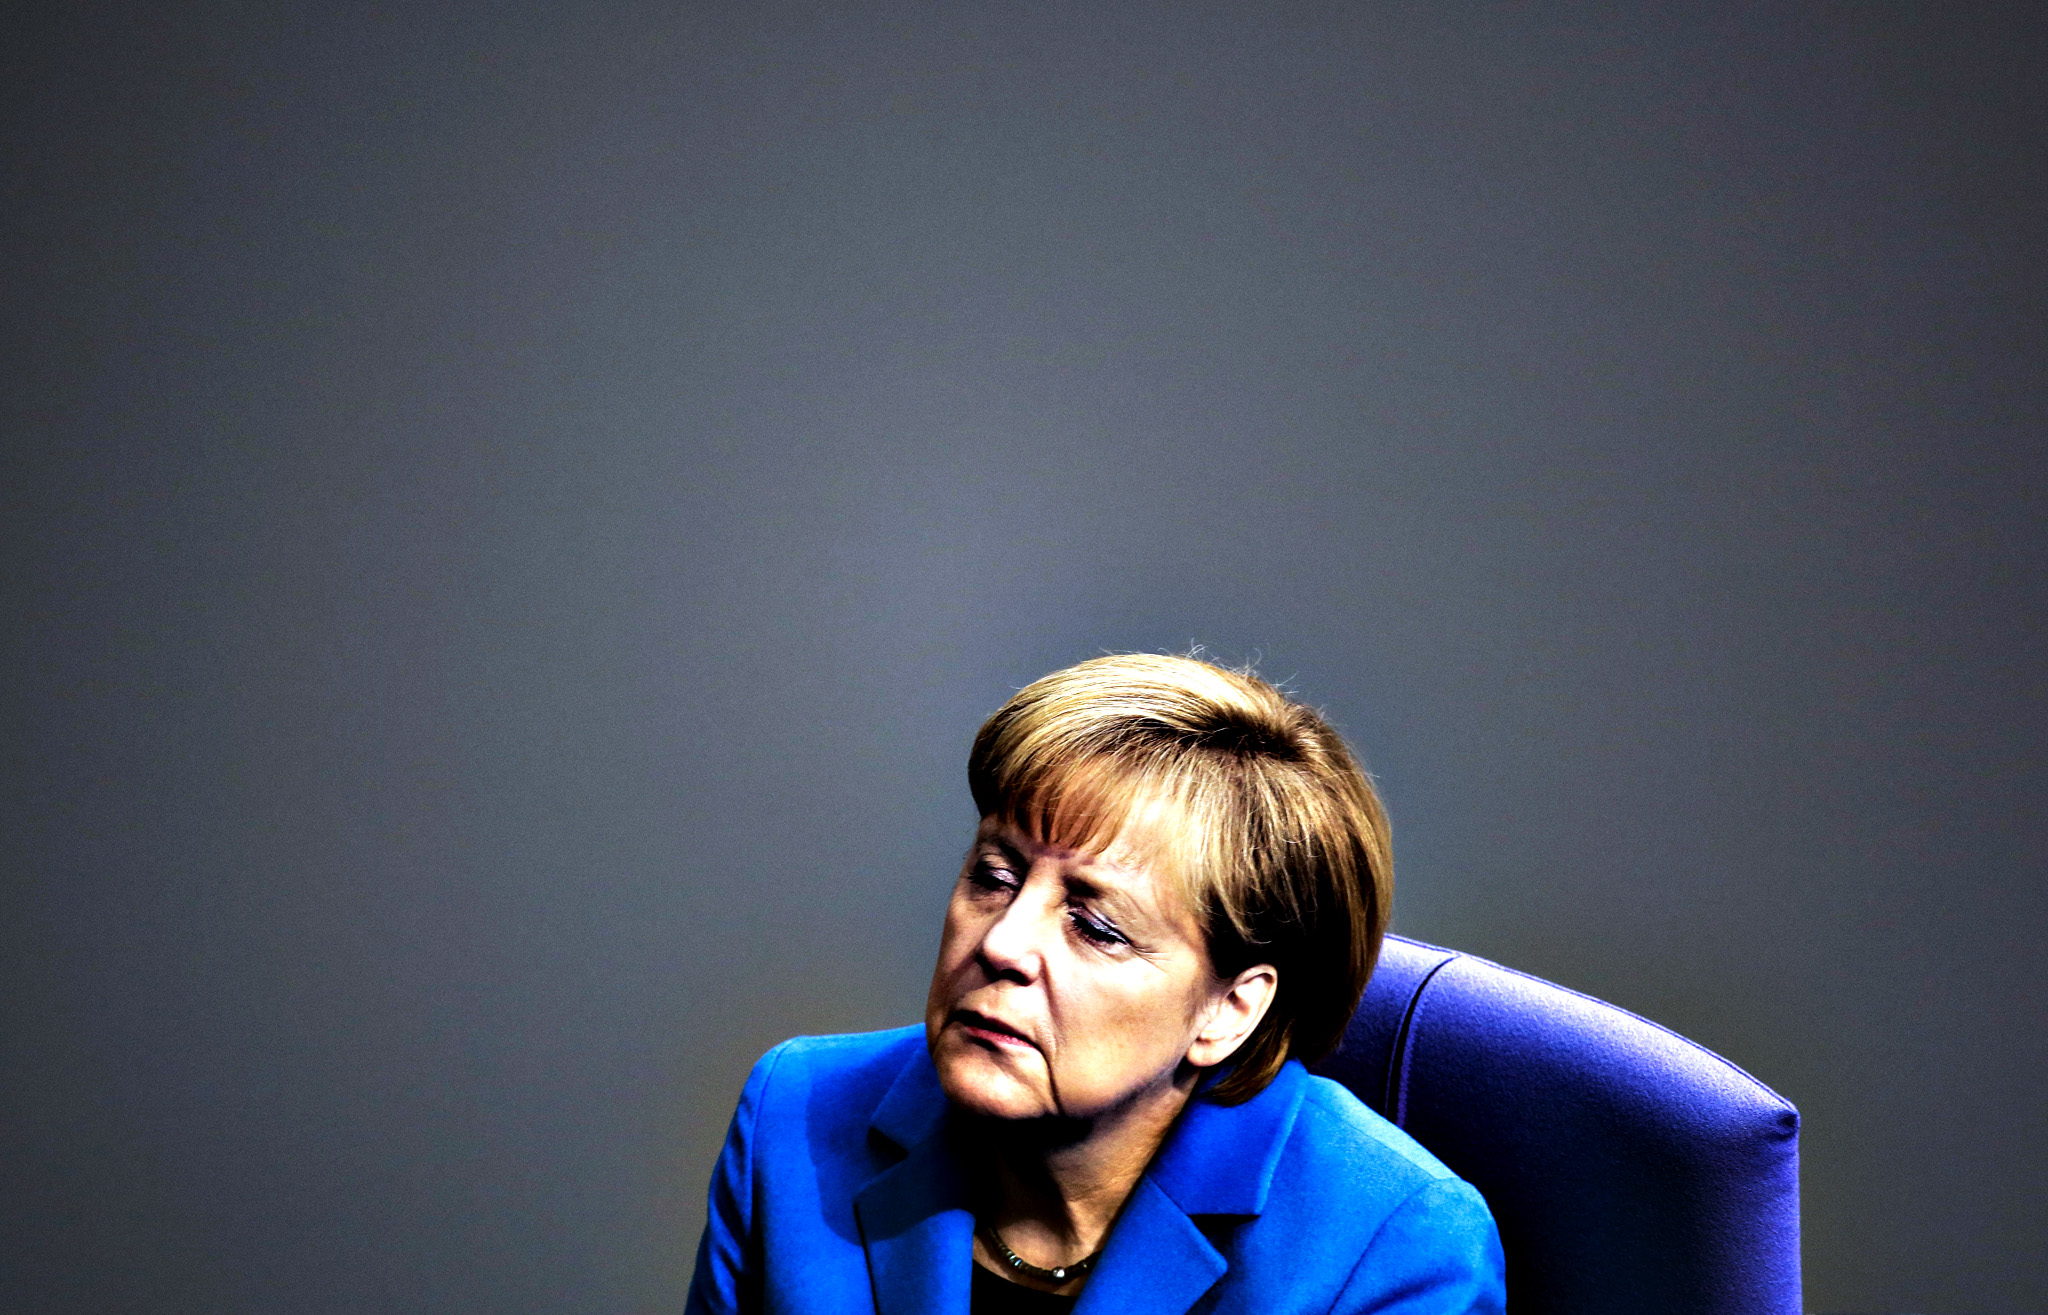 German Chancellor Angela Merkel attends a special session of the German parliament to commemorate the 25th anniversary of the fall of the wall  at the Bundestag in Berlin, Friday, Nov. 7, 2014. On Nov. 9, Germany celebrate the 25th anniversary of the fall of the wall in 1989.